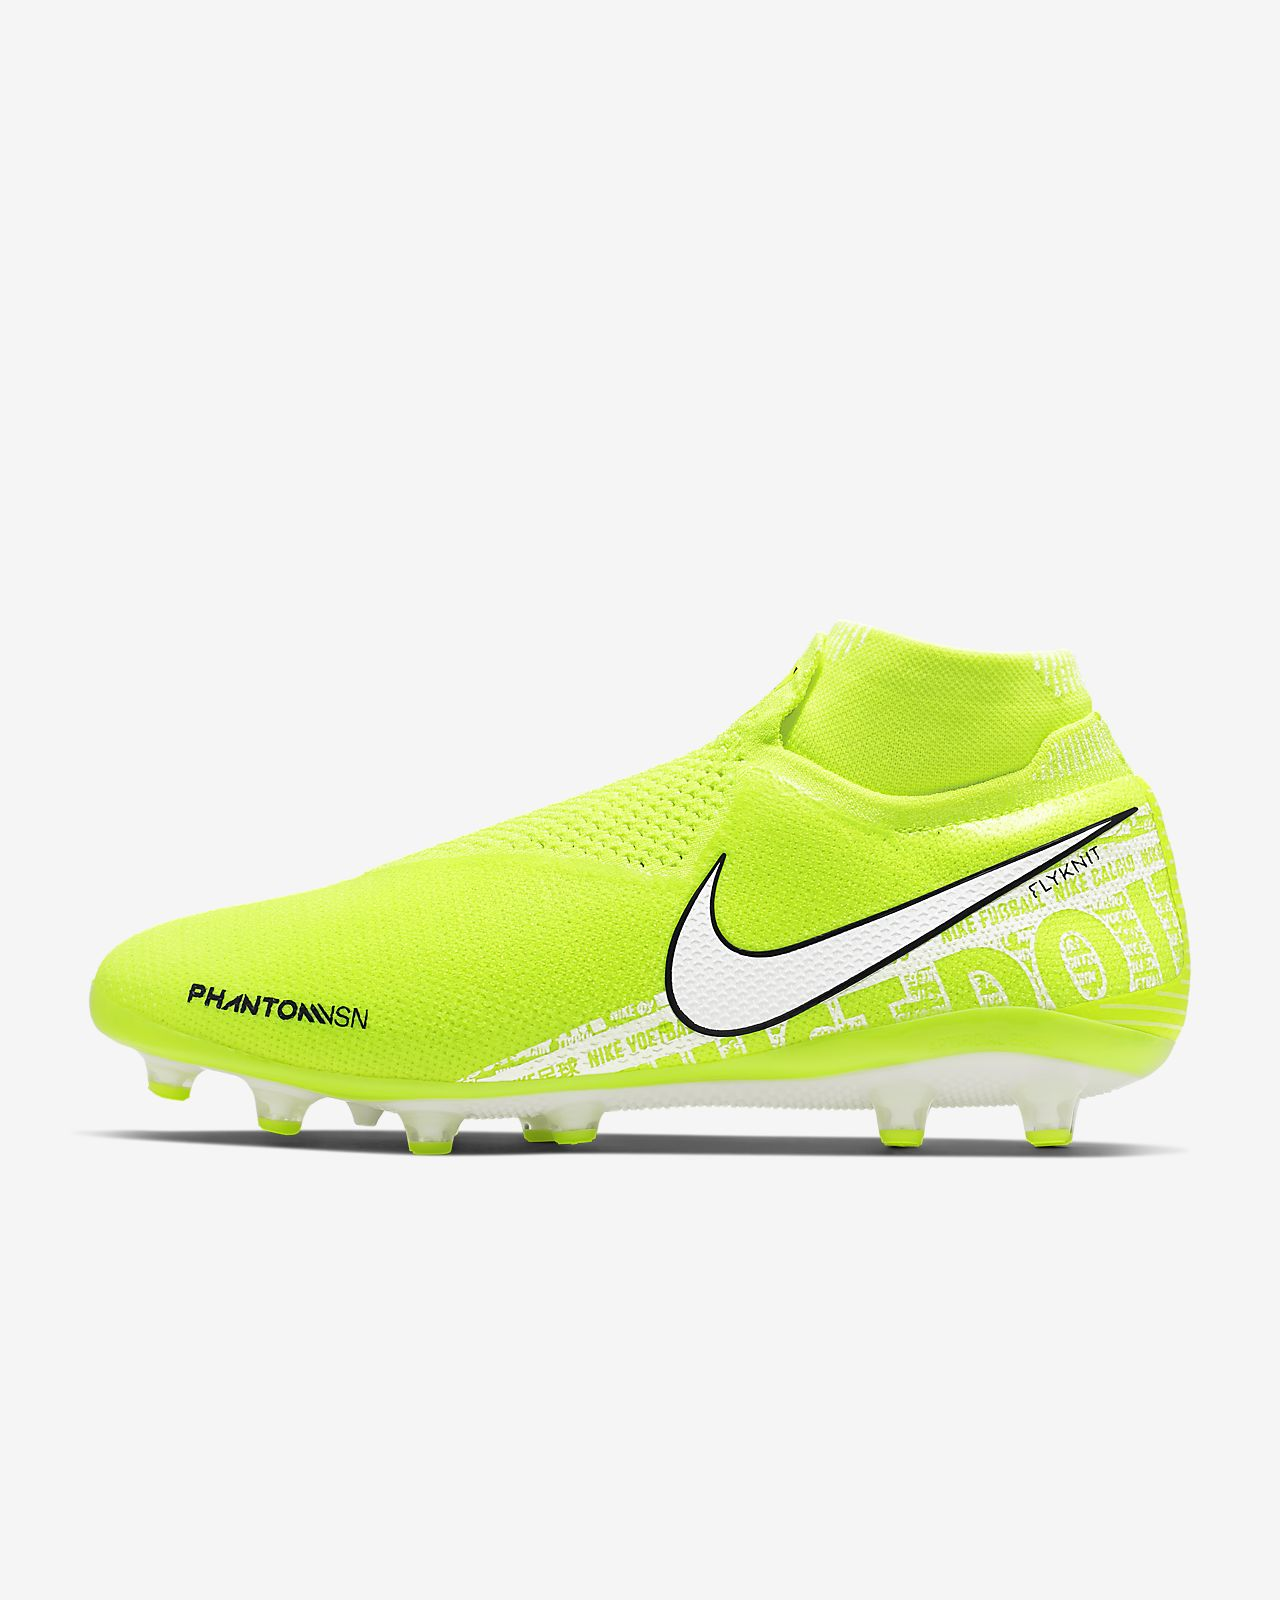 Nike Phantom Vision Elite Dynamic Fit Botes de futbol per a gespa artificial